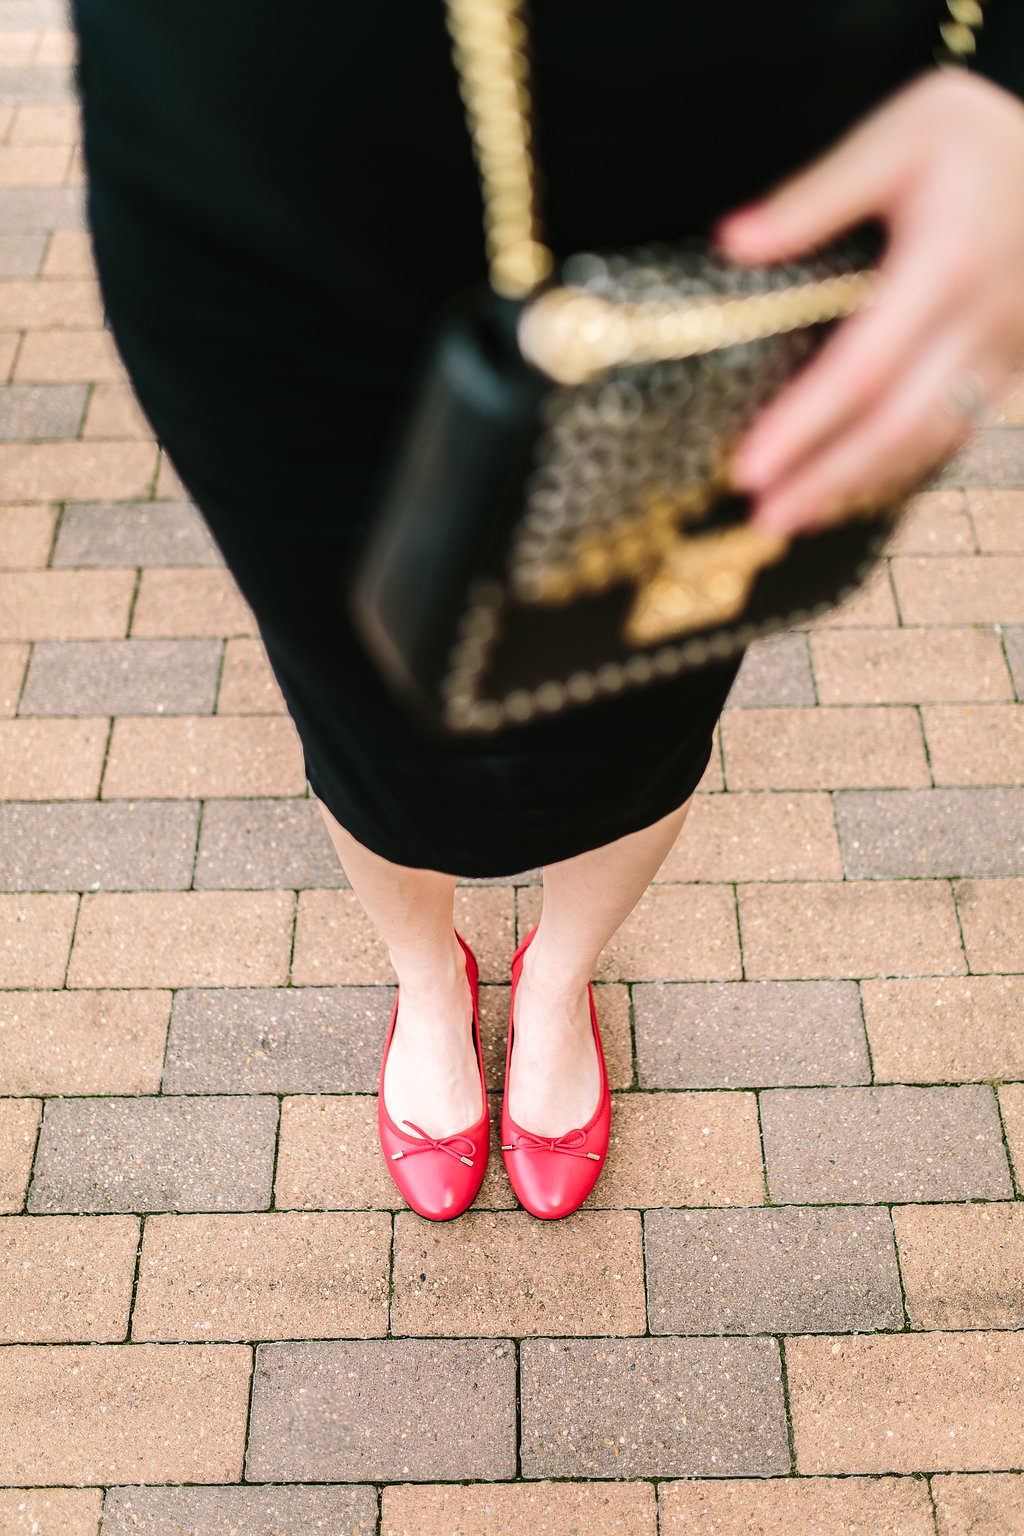 Houston Fashion Blogger Uptown With Elly Brown shares the number one must have every expecting mother needs- Ballet flats!